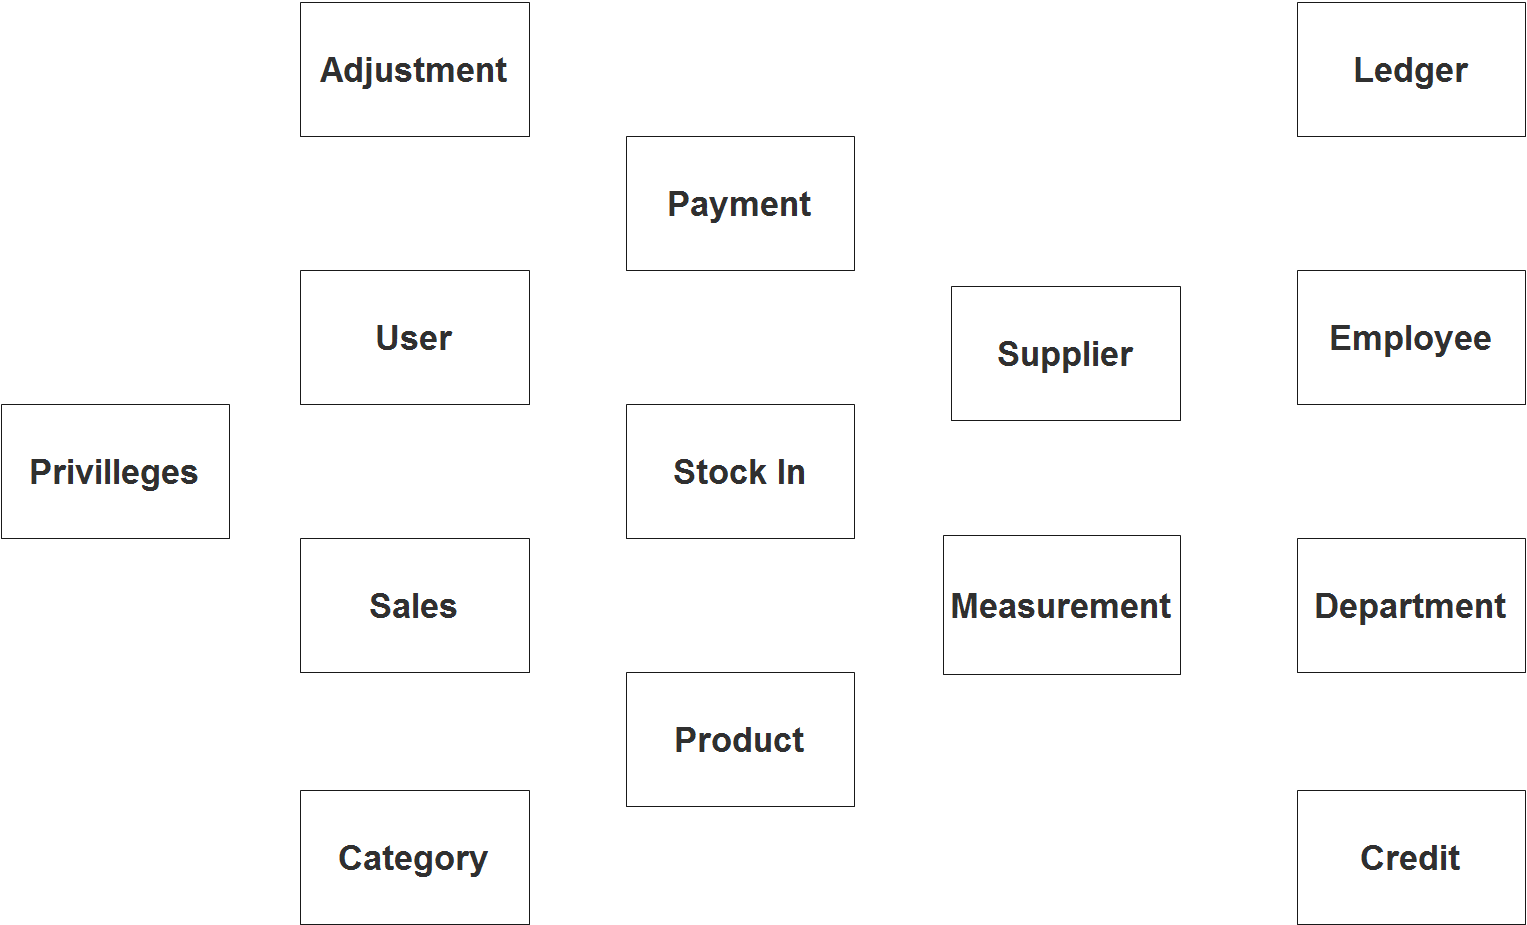 Canteen Sales and Credit Management System ER Diagram - Step 1 Identify Entities